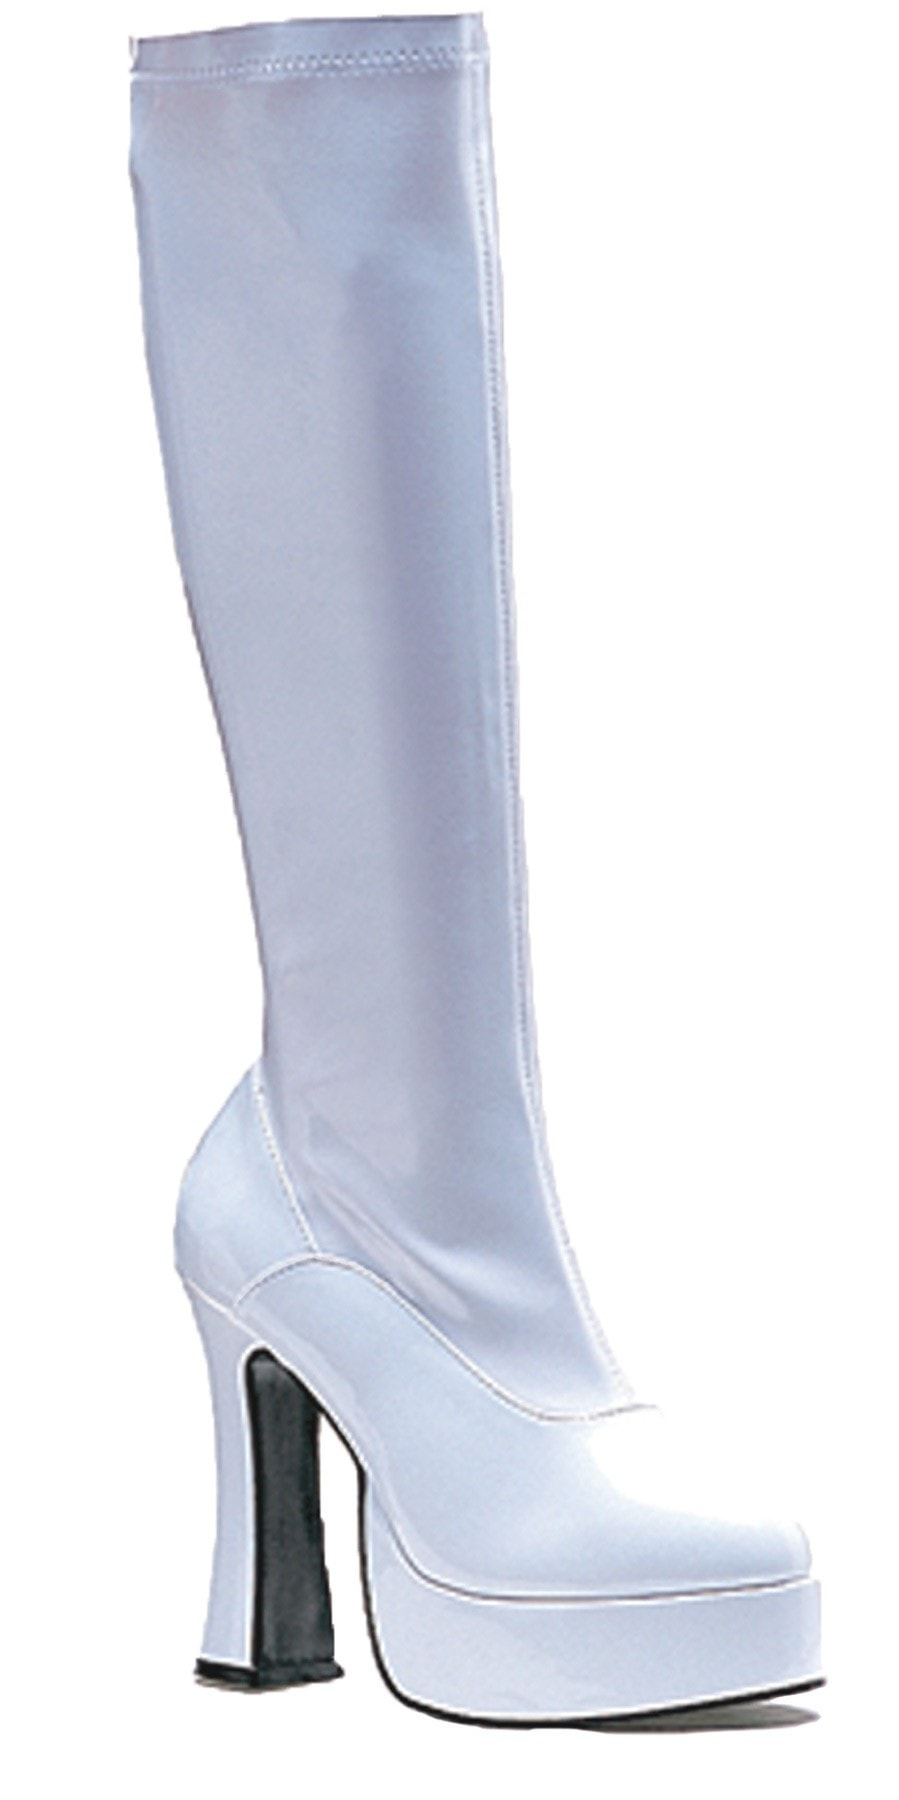 Morris Boot Chacha White Size 9 - MaxWigs